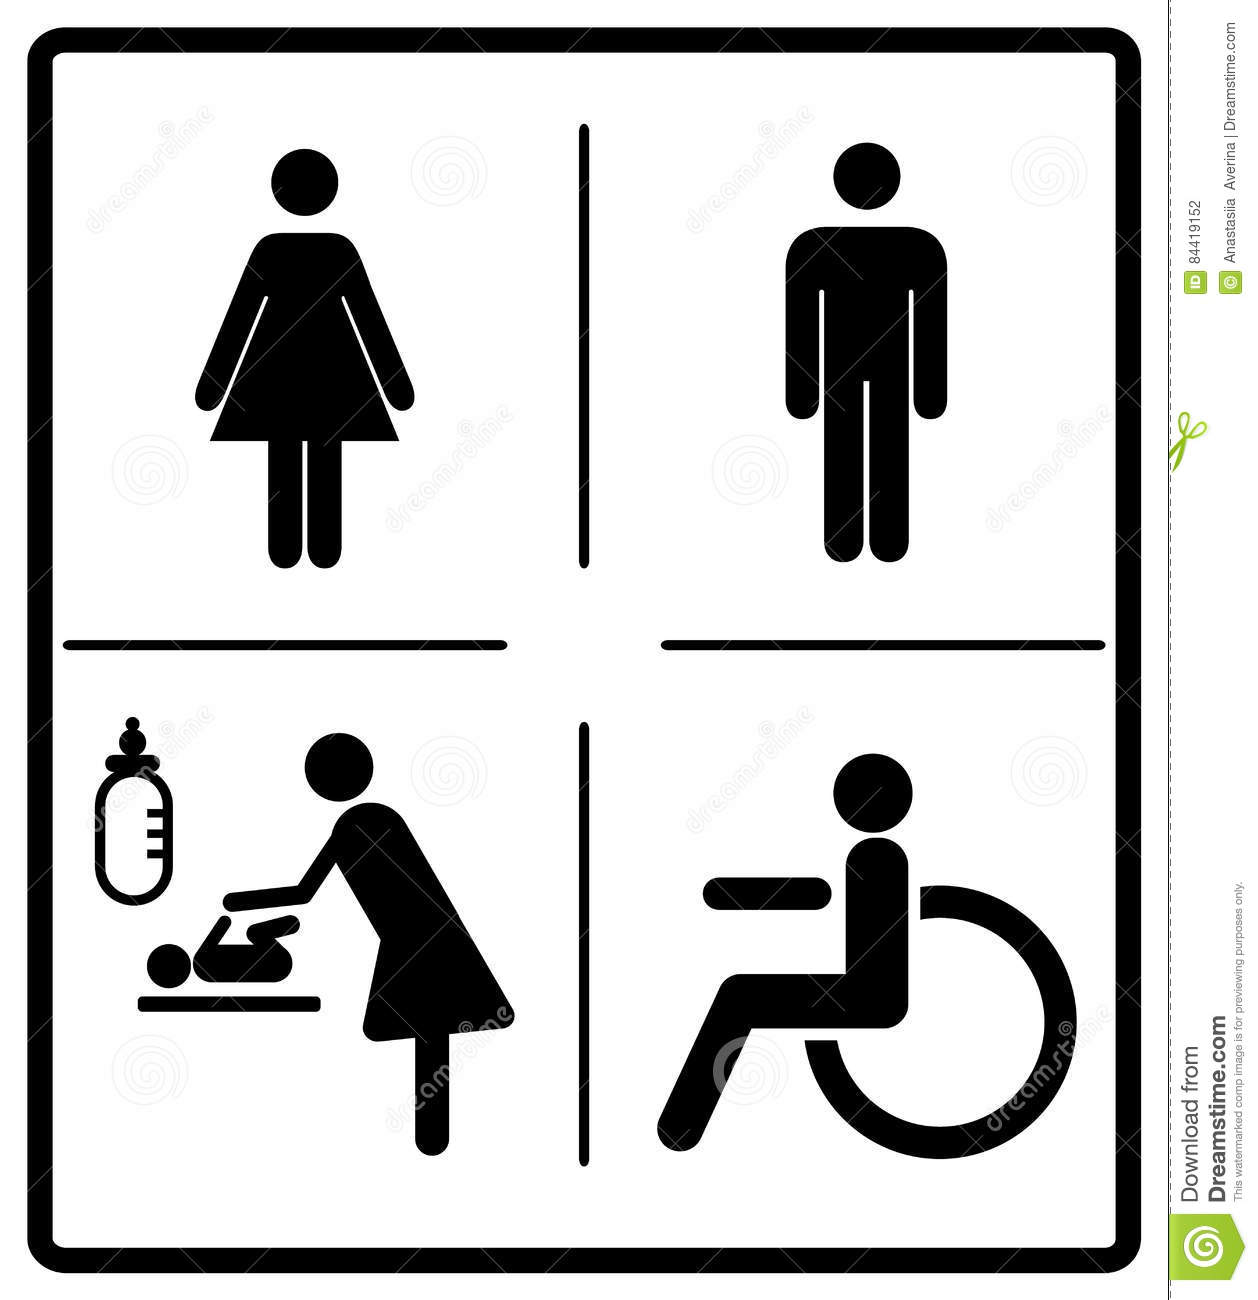 Merveilleux Vector Illustration Of Mens And Womens Disabled Restroom Baby Care Room Sign,  Toilette Symbols, Invalid Icon. Vector Symbols For Public Places, ...